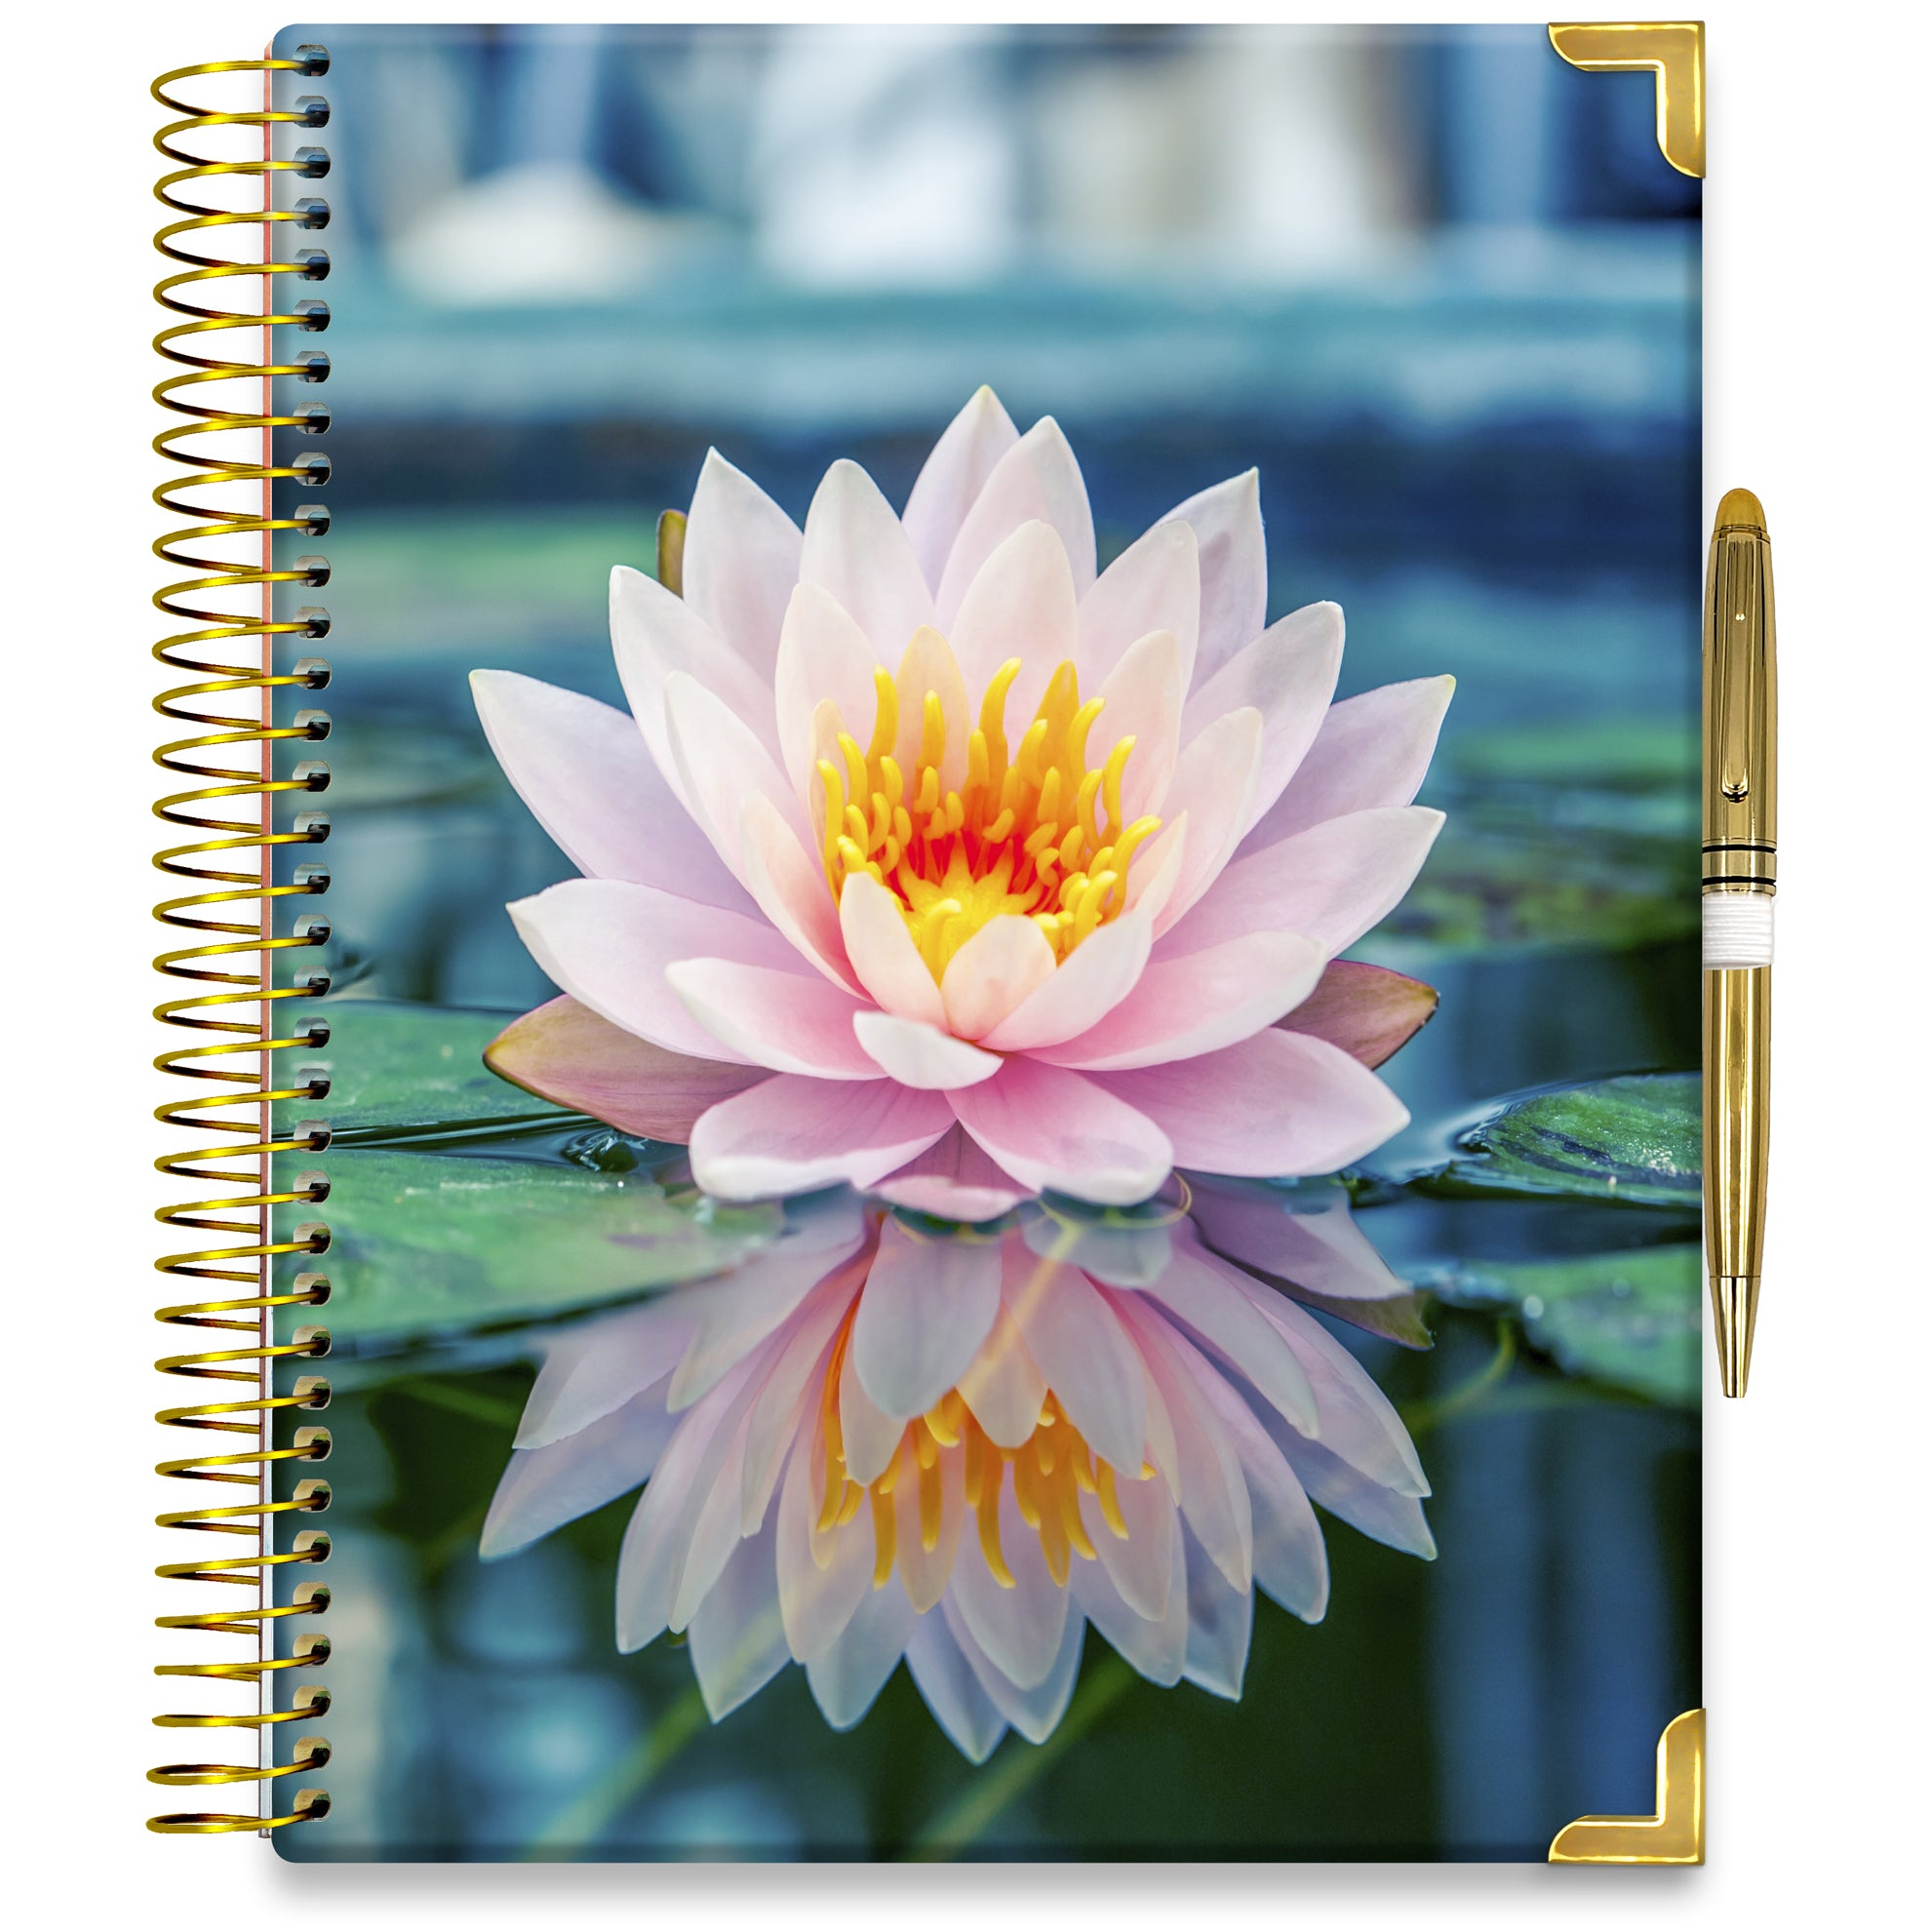 PRE-ORDER: APRIL 2021-2022 Planner - 15M Academic Year - Pro-Edition - 8.5x11 Hardcover - Pink Lilly Planner Cover